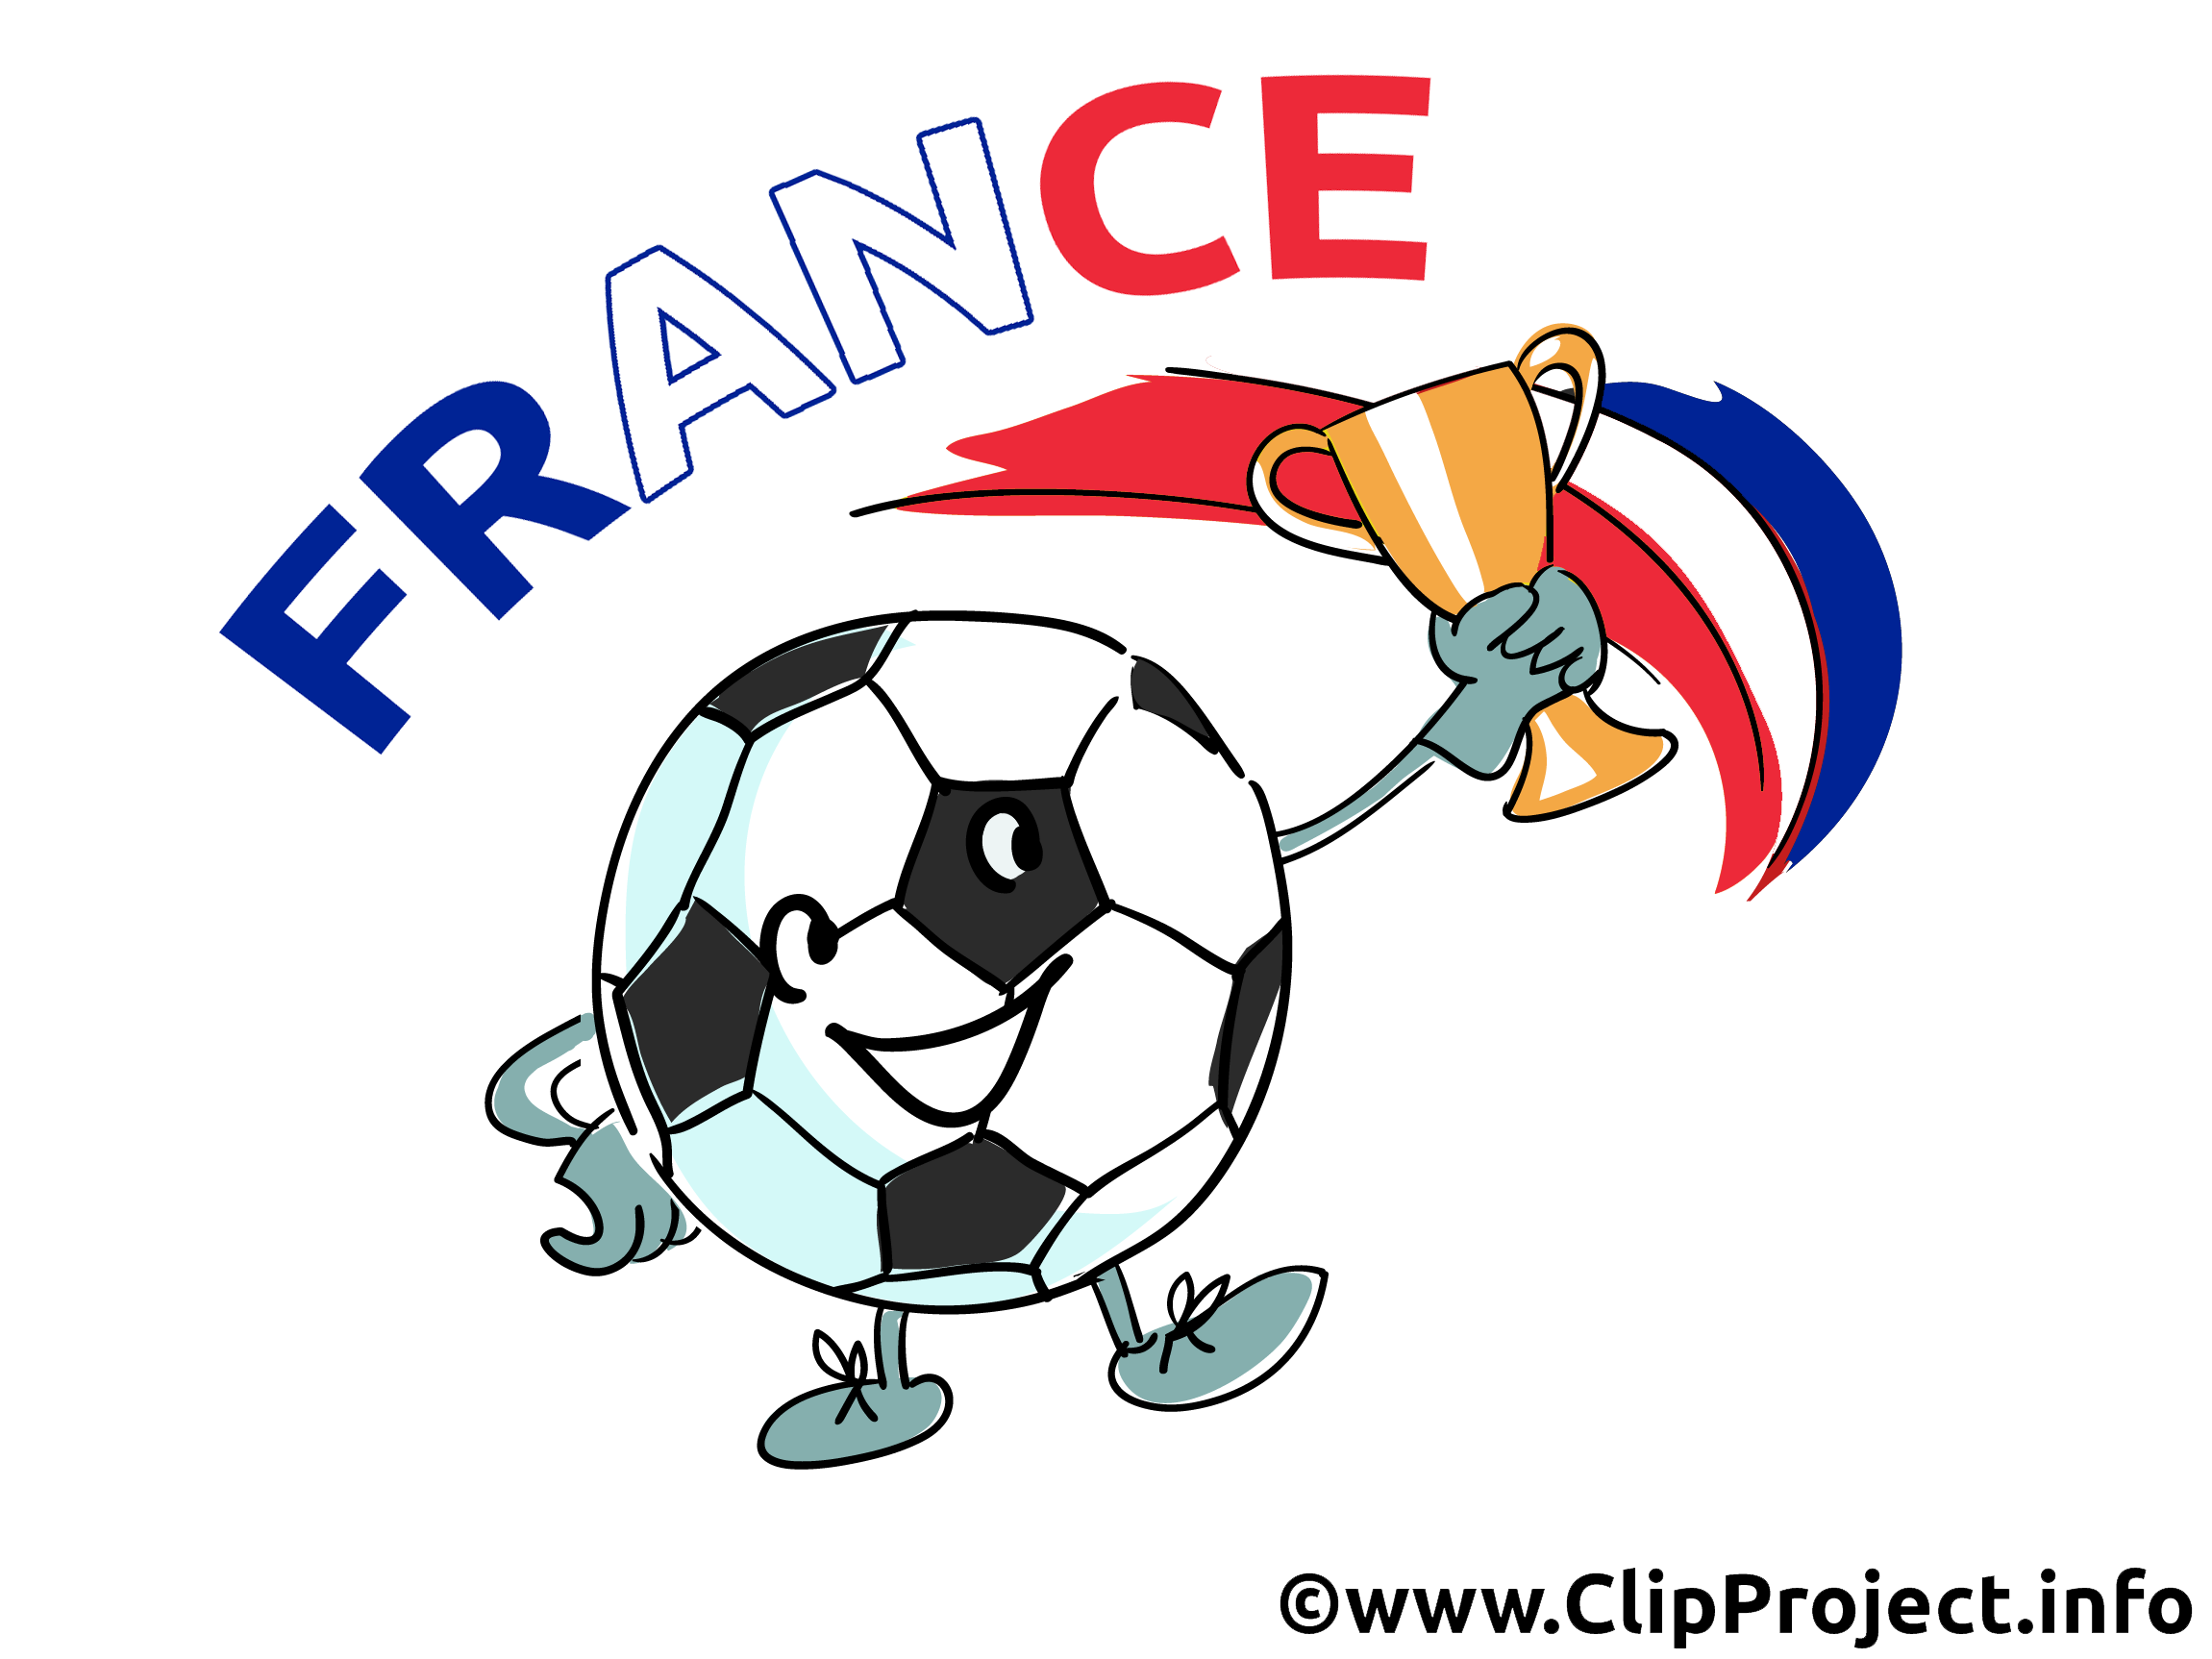 France football clip art gratuit football dessin picture image graphic clip art - France football gratuit ...